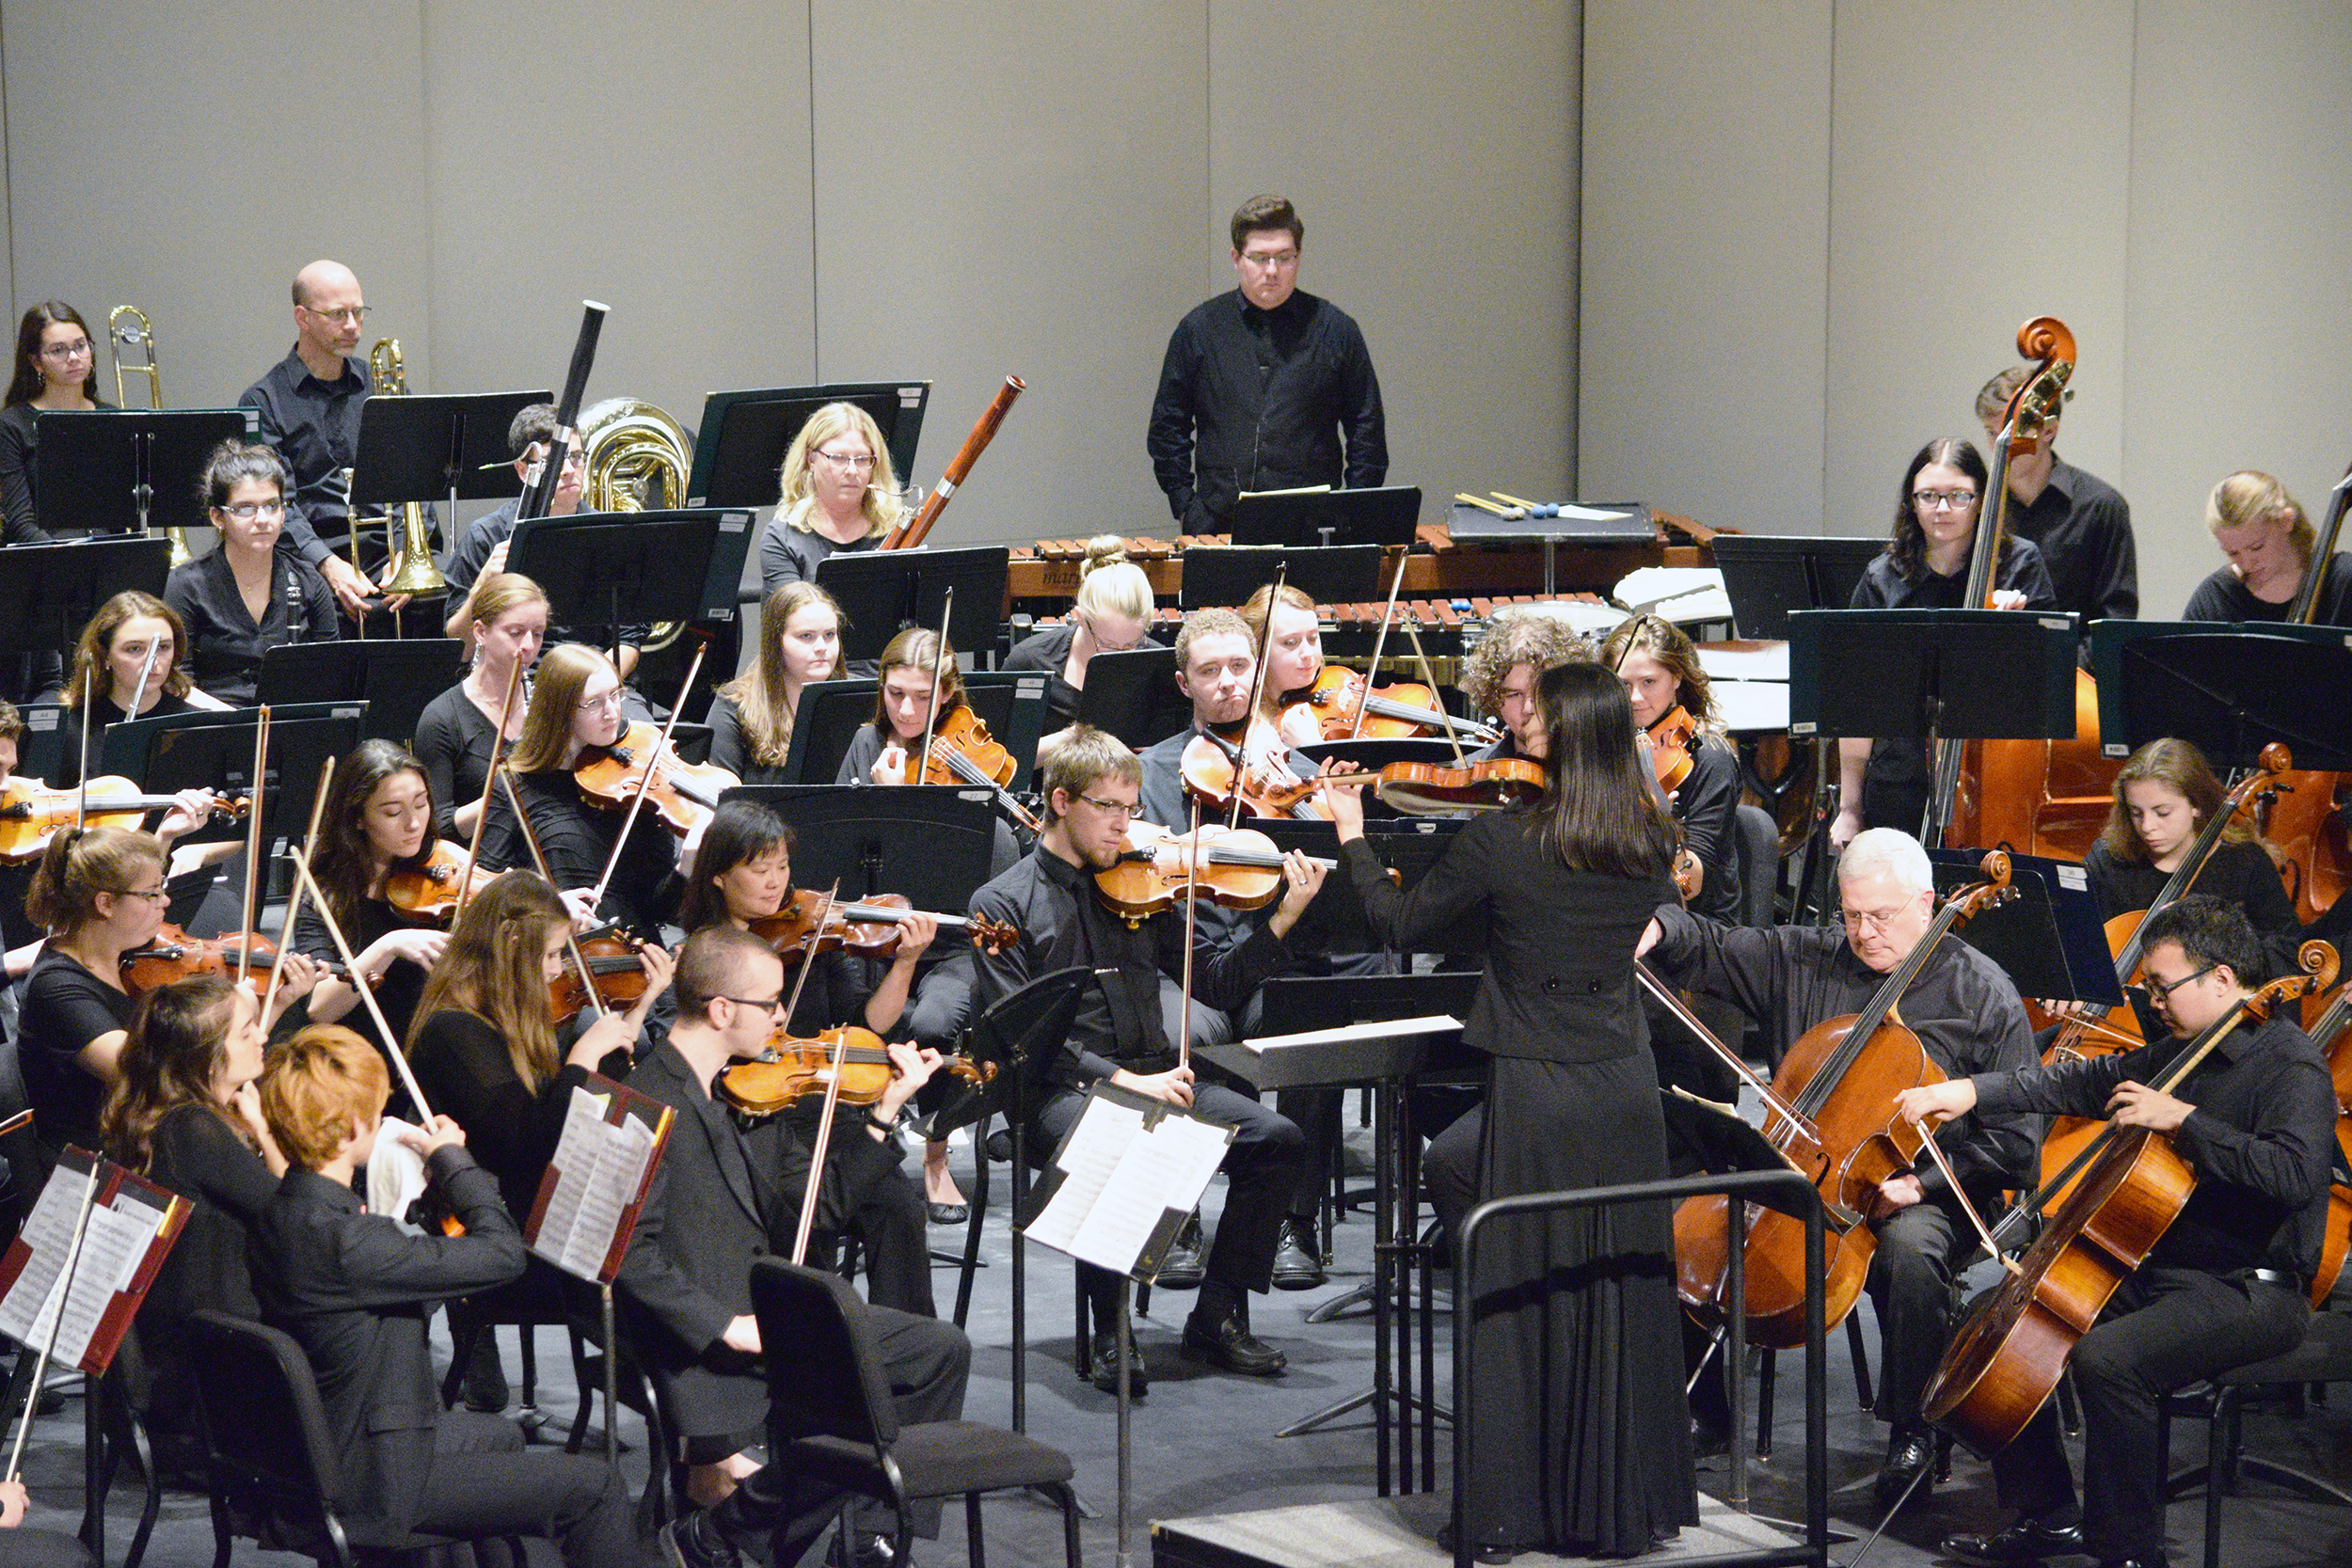 The Geneseo Symphony Orchestra performed on Sunday Oct. 14 in Wadsworth Auditorium. Leah McGray conducted the orchestra as they played a multitude of pieces by composers such as Franz Schubert, professor of music James Walker and Edvard Grieg. (Elijah Reed/Staff photographer)